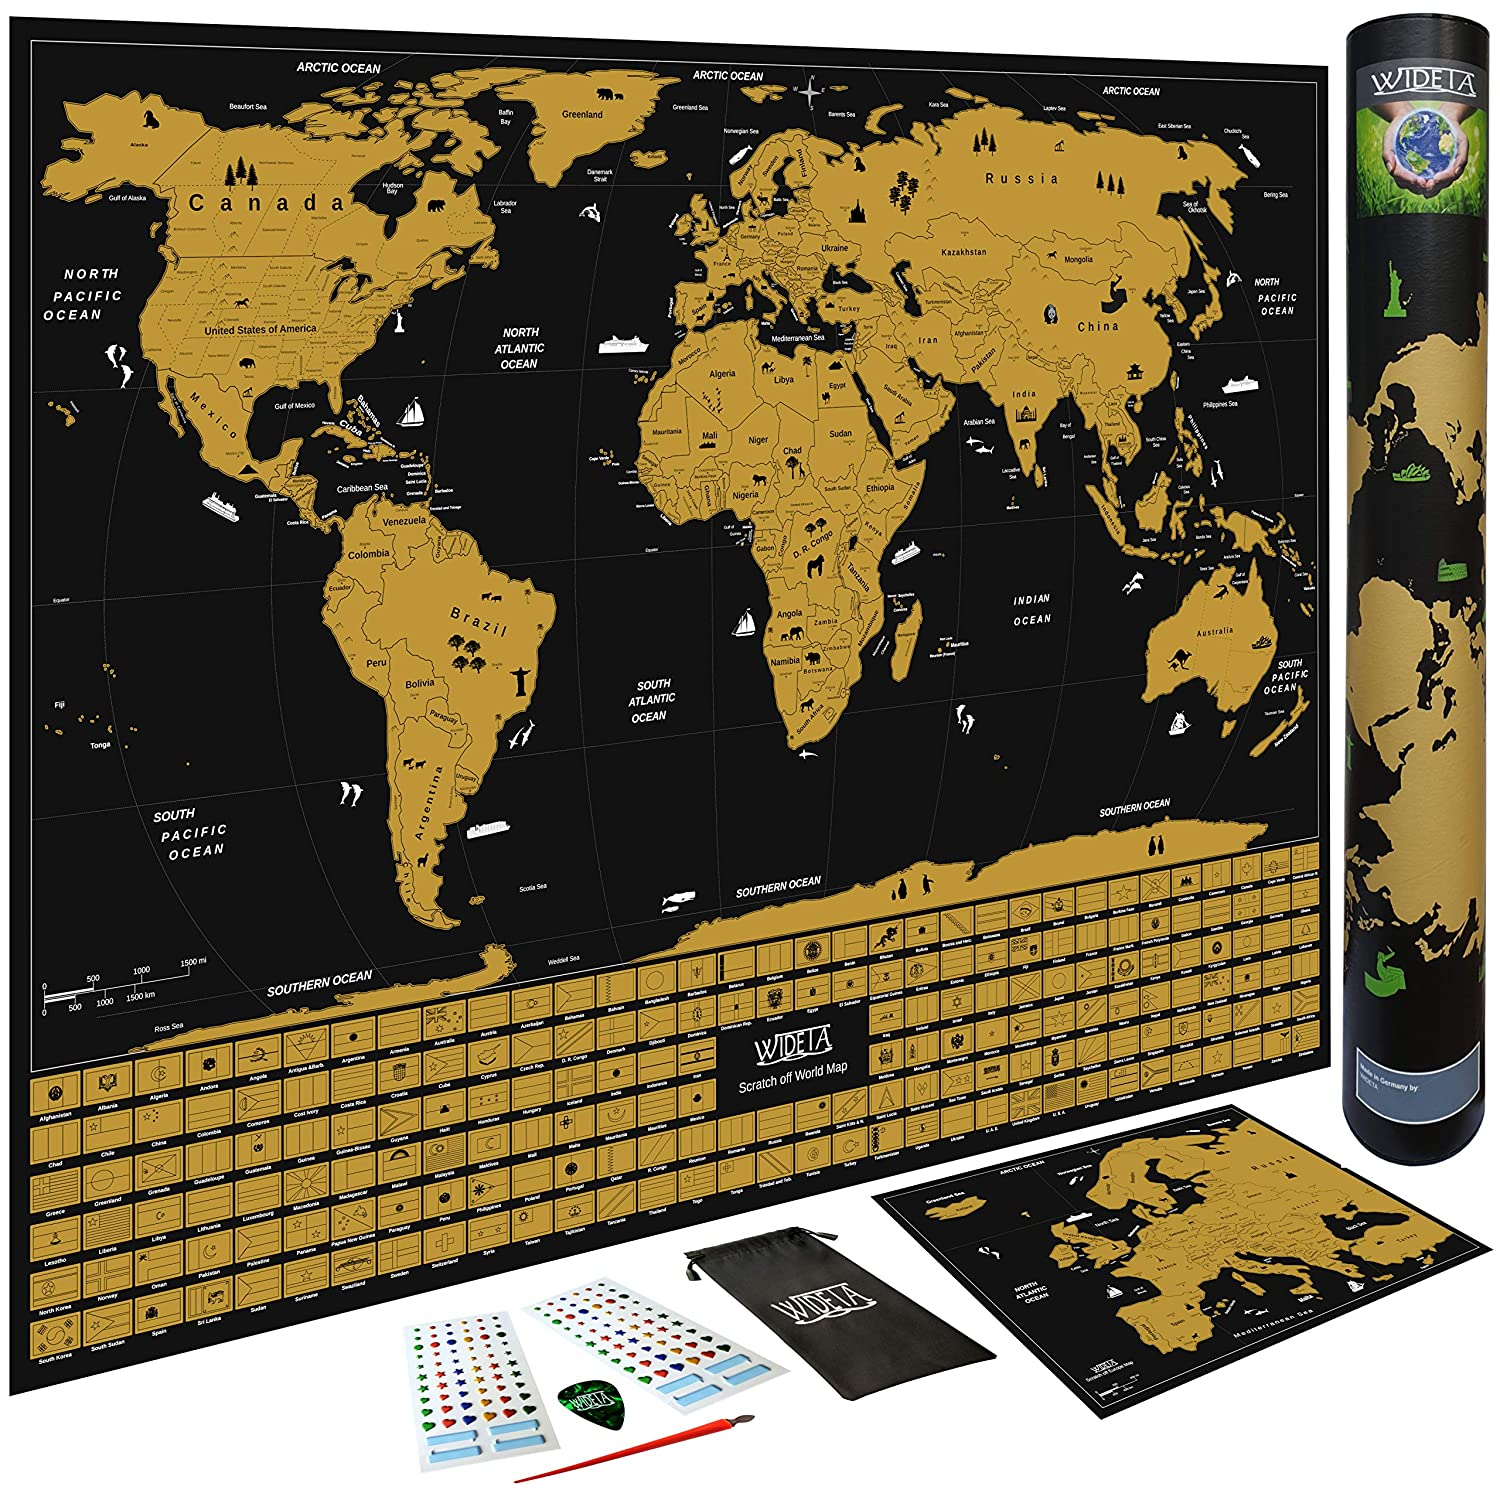 WIDETA Scratch off world map with flags of countries // Poster XL 60 x 42 cm Bonus Europe Map pick and scratch pen sticker